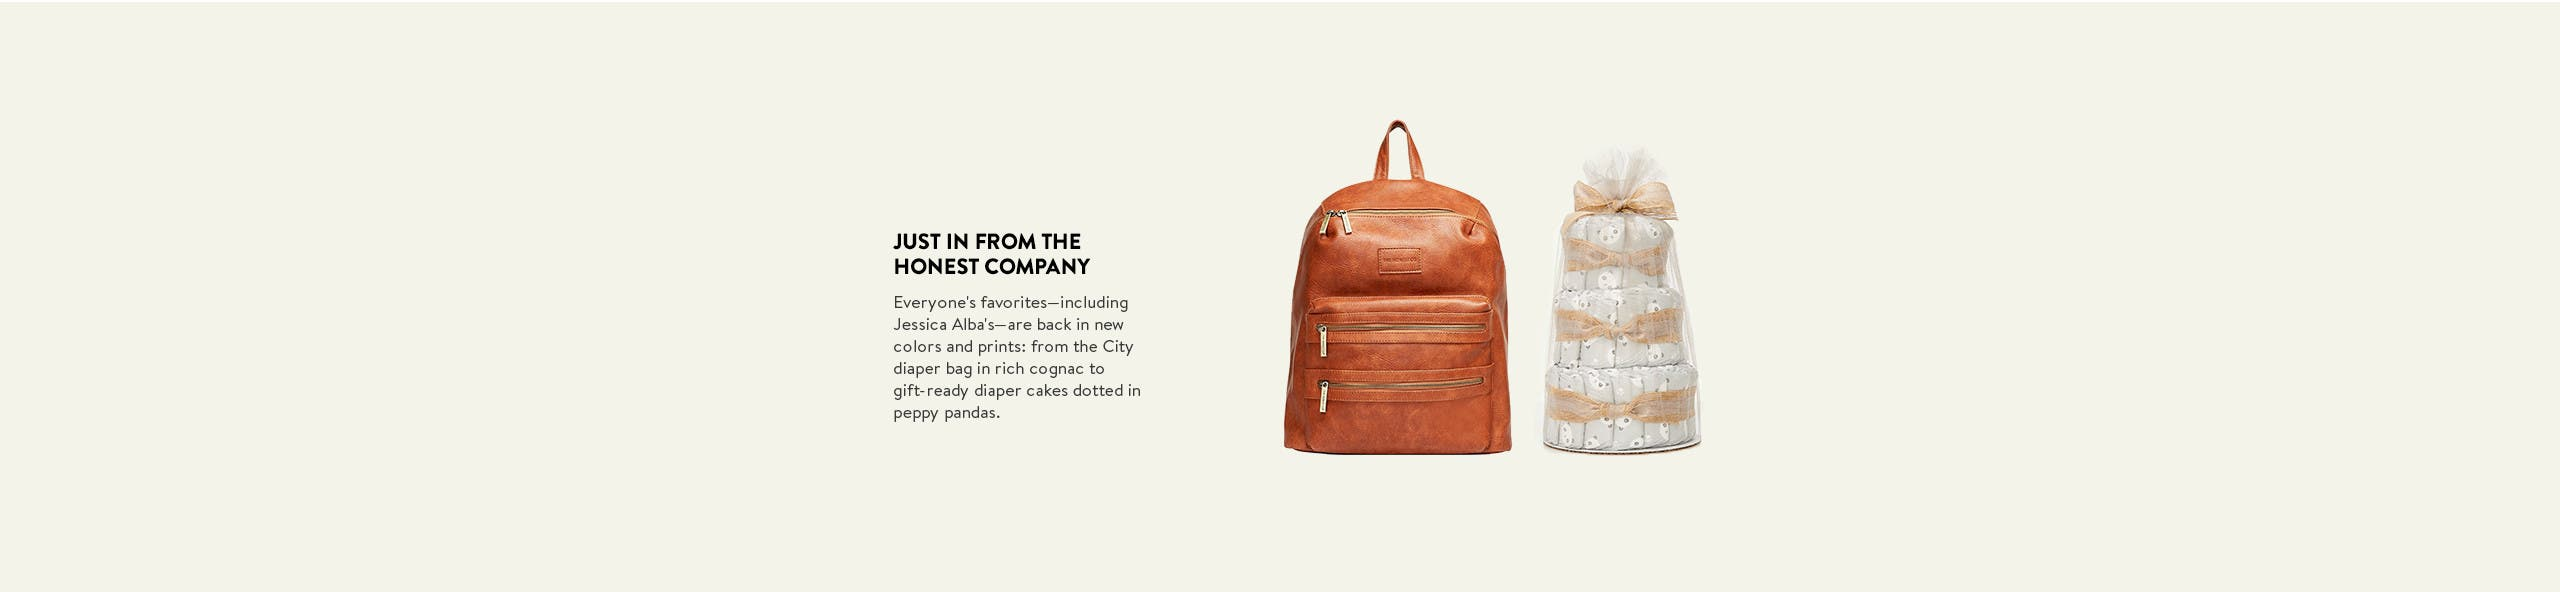 Just in from The Honest Company: the City diaper backpack in cognac.